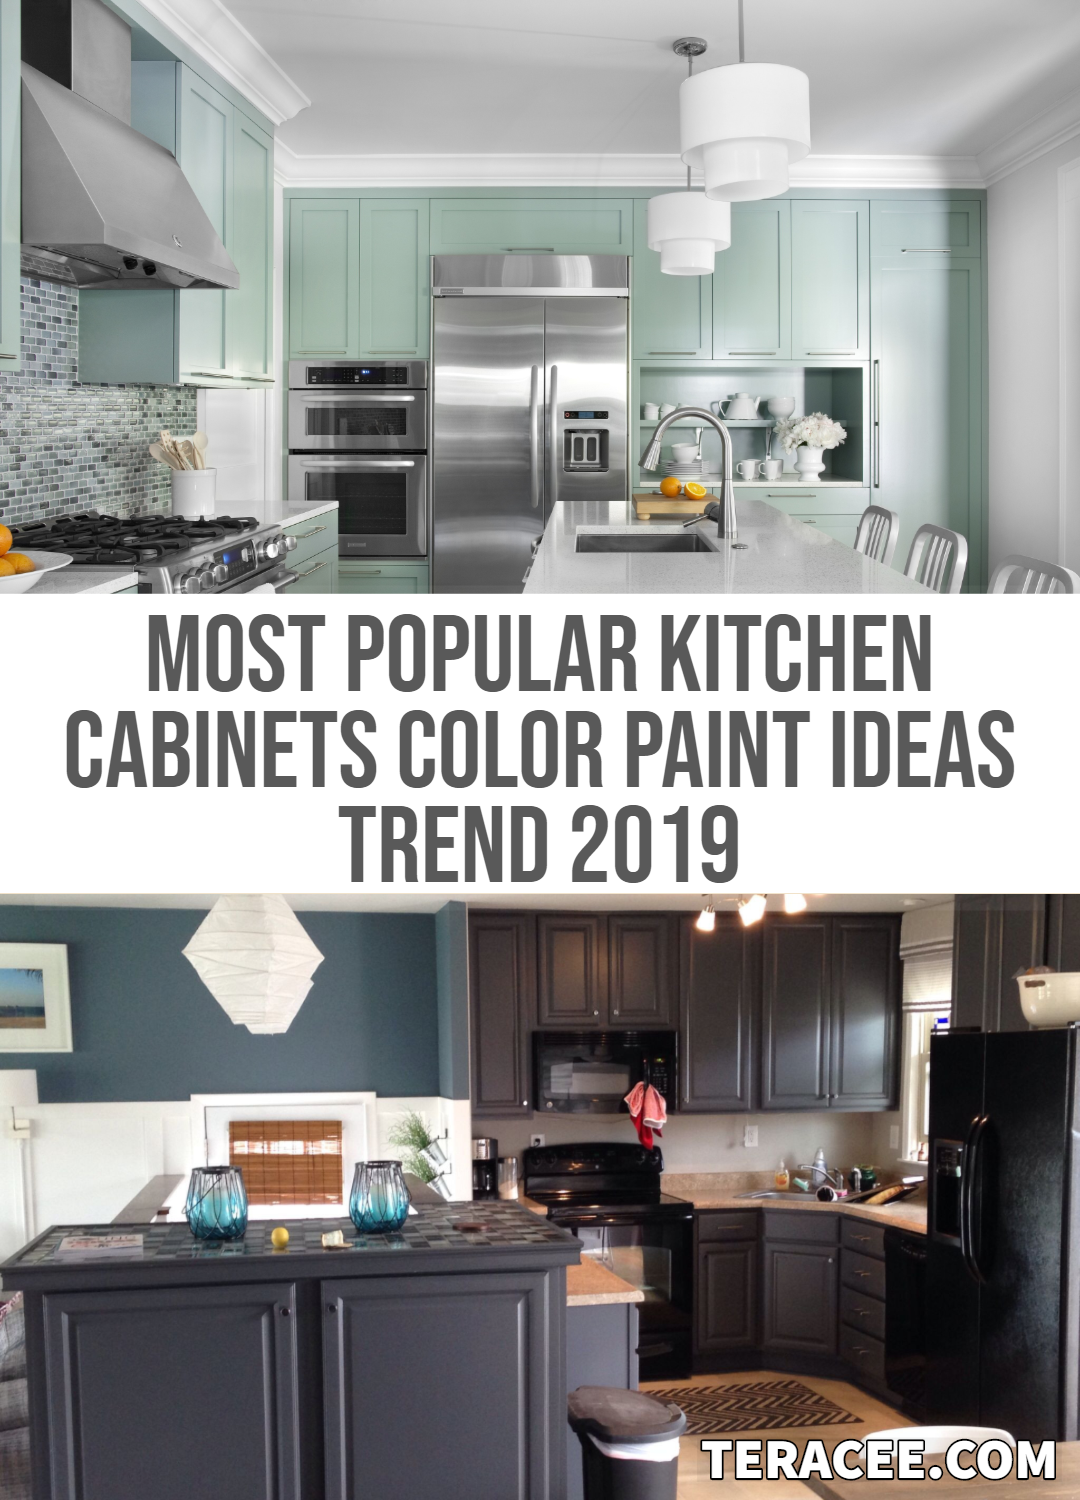 33 Most Popular Kitchen Cabinets Color Paint Ideas Trend 2019 Teracee Kitchen Cabinet Colors Old Kitchen Cabinets Kitchen Cupboard Colours